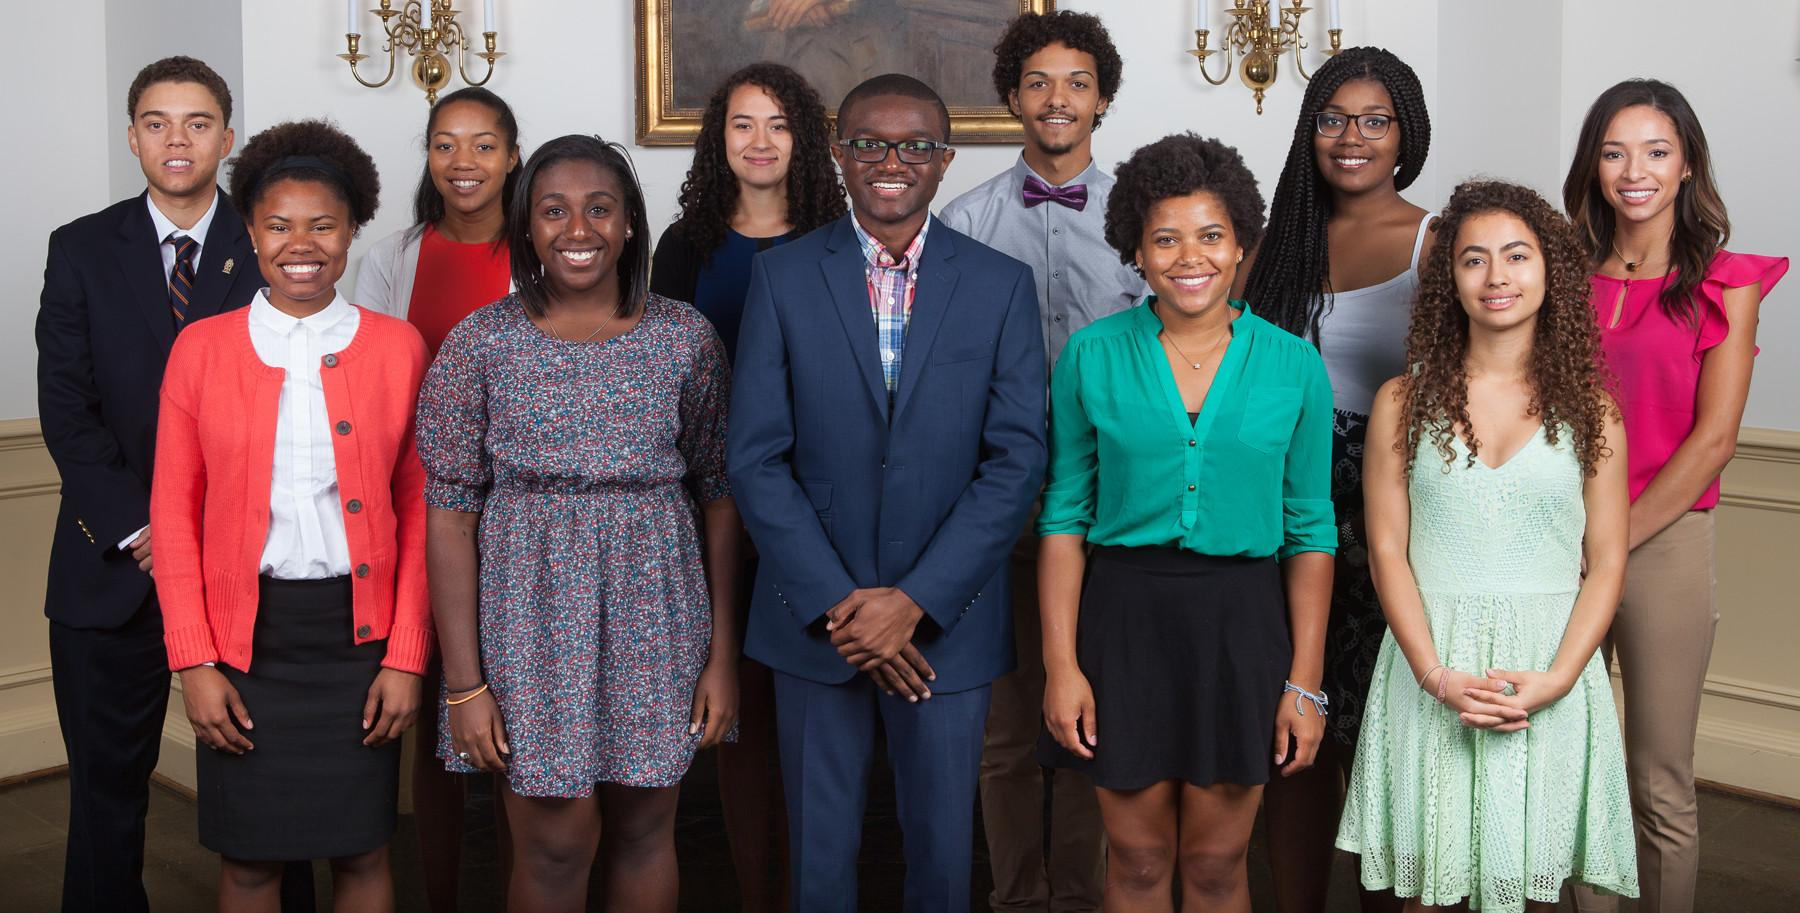 Current Ridley Scholars, top row from L-R: Jacob Uskavitch, Dominique Willis, Kiera Givens, Triston Smith, Ravynn Stringfield and Nena Evans. The second row, from left to right: Jasmine Zollar, Micah Watson, Tyler Ambrose, Bianca Decatur, Stephanie Durham